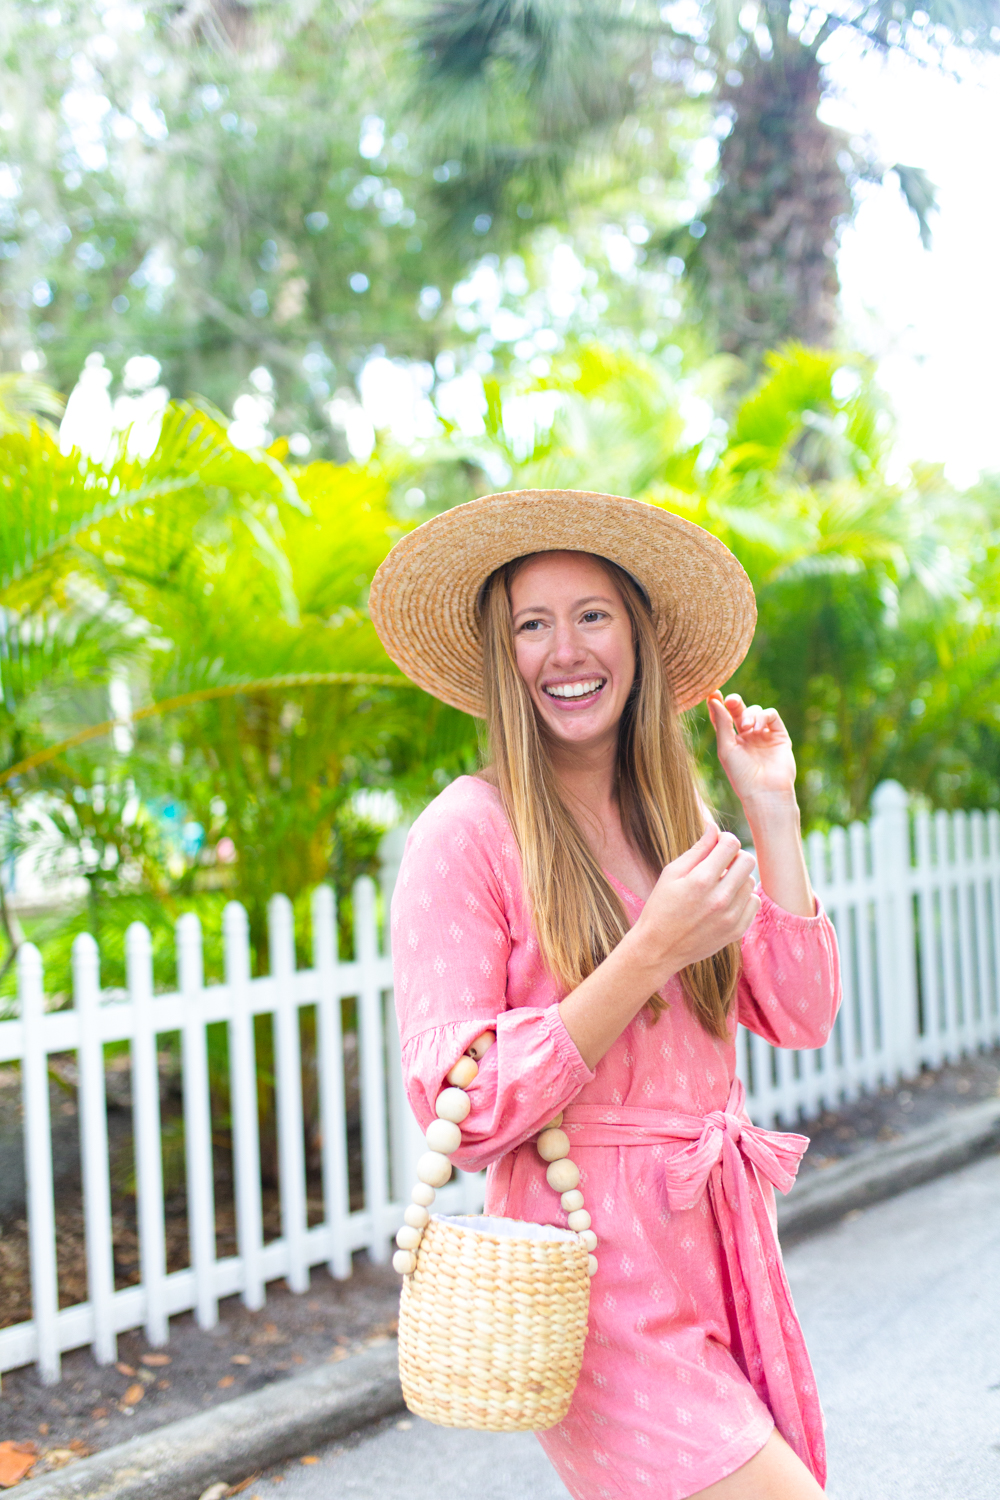 Affordable Rattan and Straw Accessories for Spring and Summer / Spring Jumpsuit / LOFT Romper / Pink Jumpsuit / How to Style Straw Accessories / Simple Spring Outfit / Spring Outfit Inspiration - Sunshine Style, A Florida Fashion and Lifestyle Blog by Katie McCarty